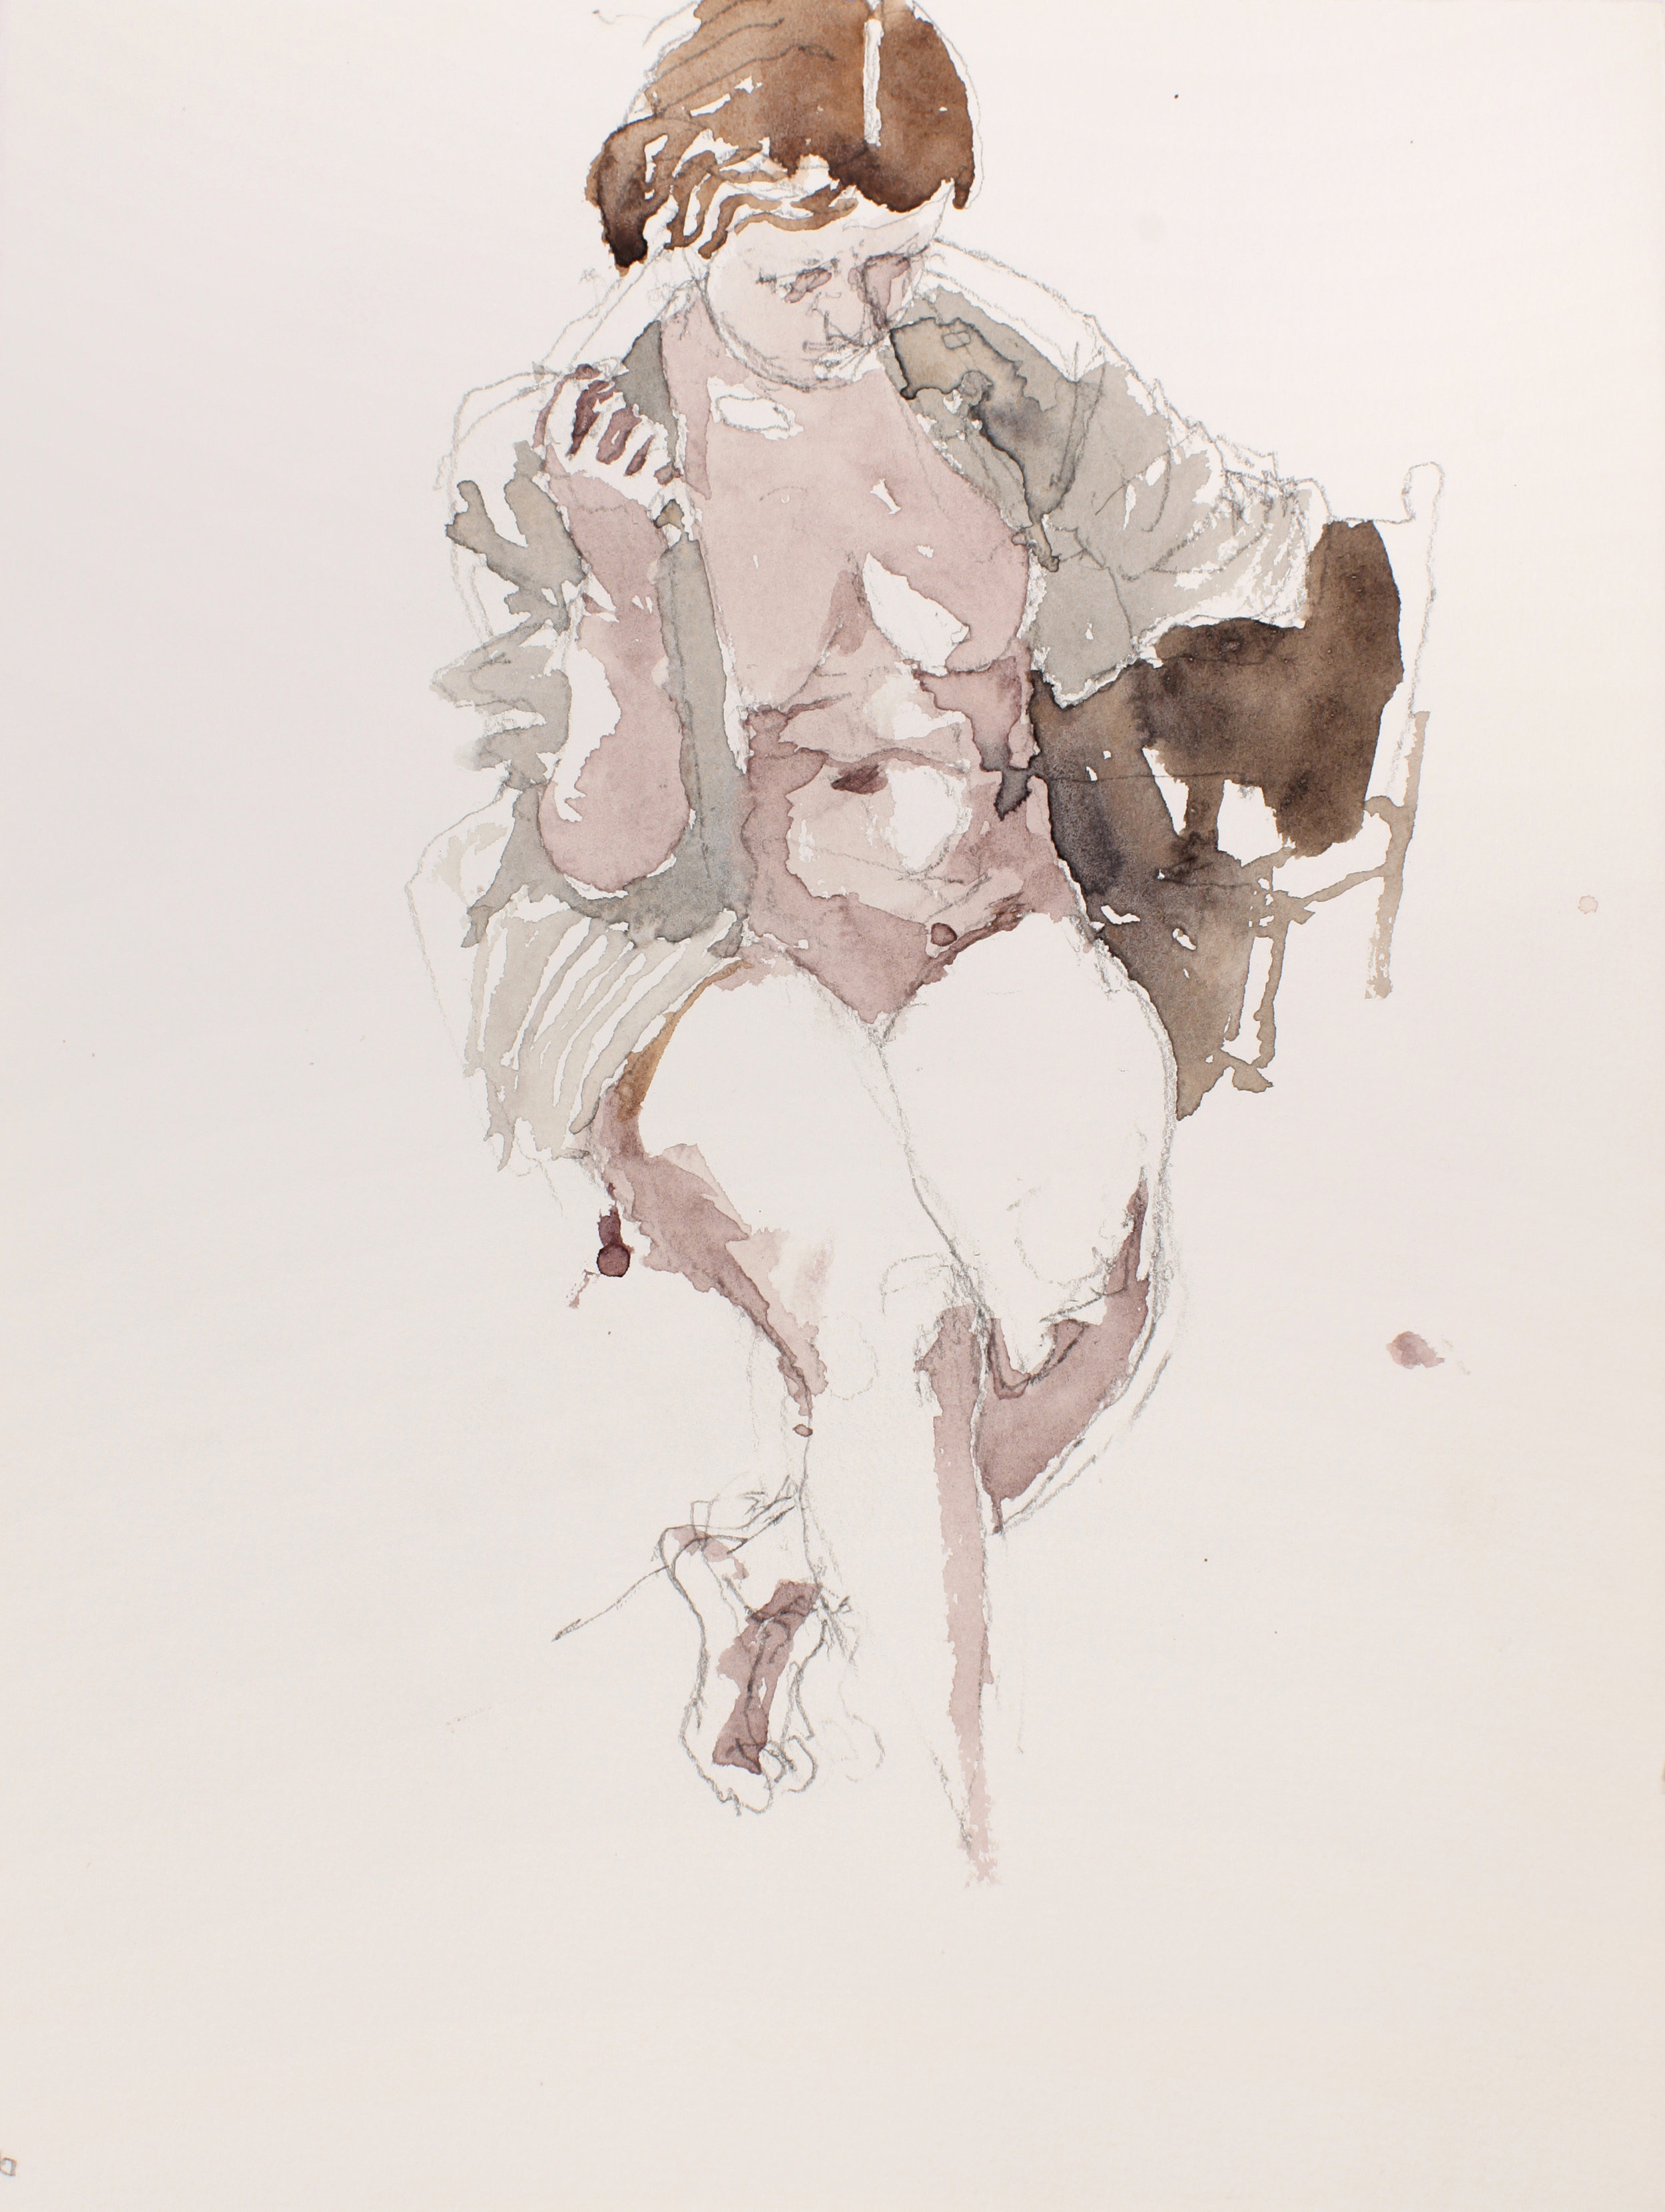 2007_Seated_Nude_with_Open_Shirt_watercolour_and_pencil_on_paper_15x11in_WPF502.jpg